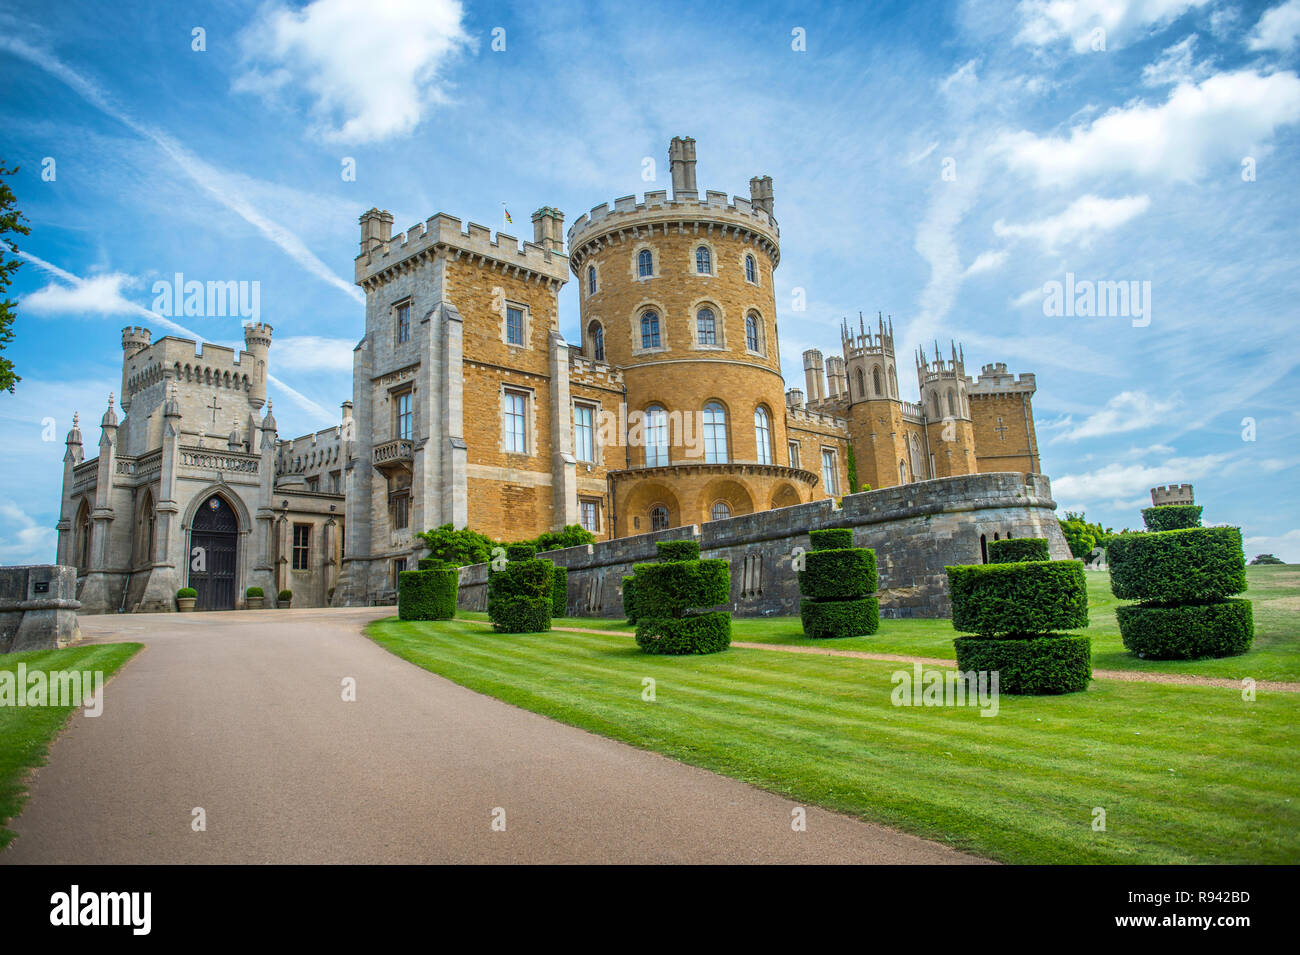 Belvoir Castle in English county of Leicestershire - Stock Image